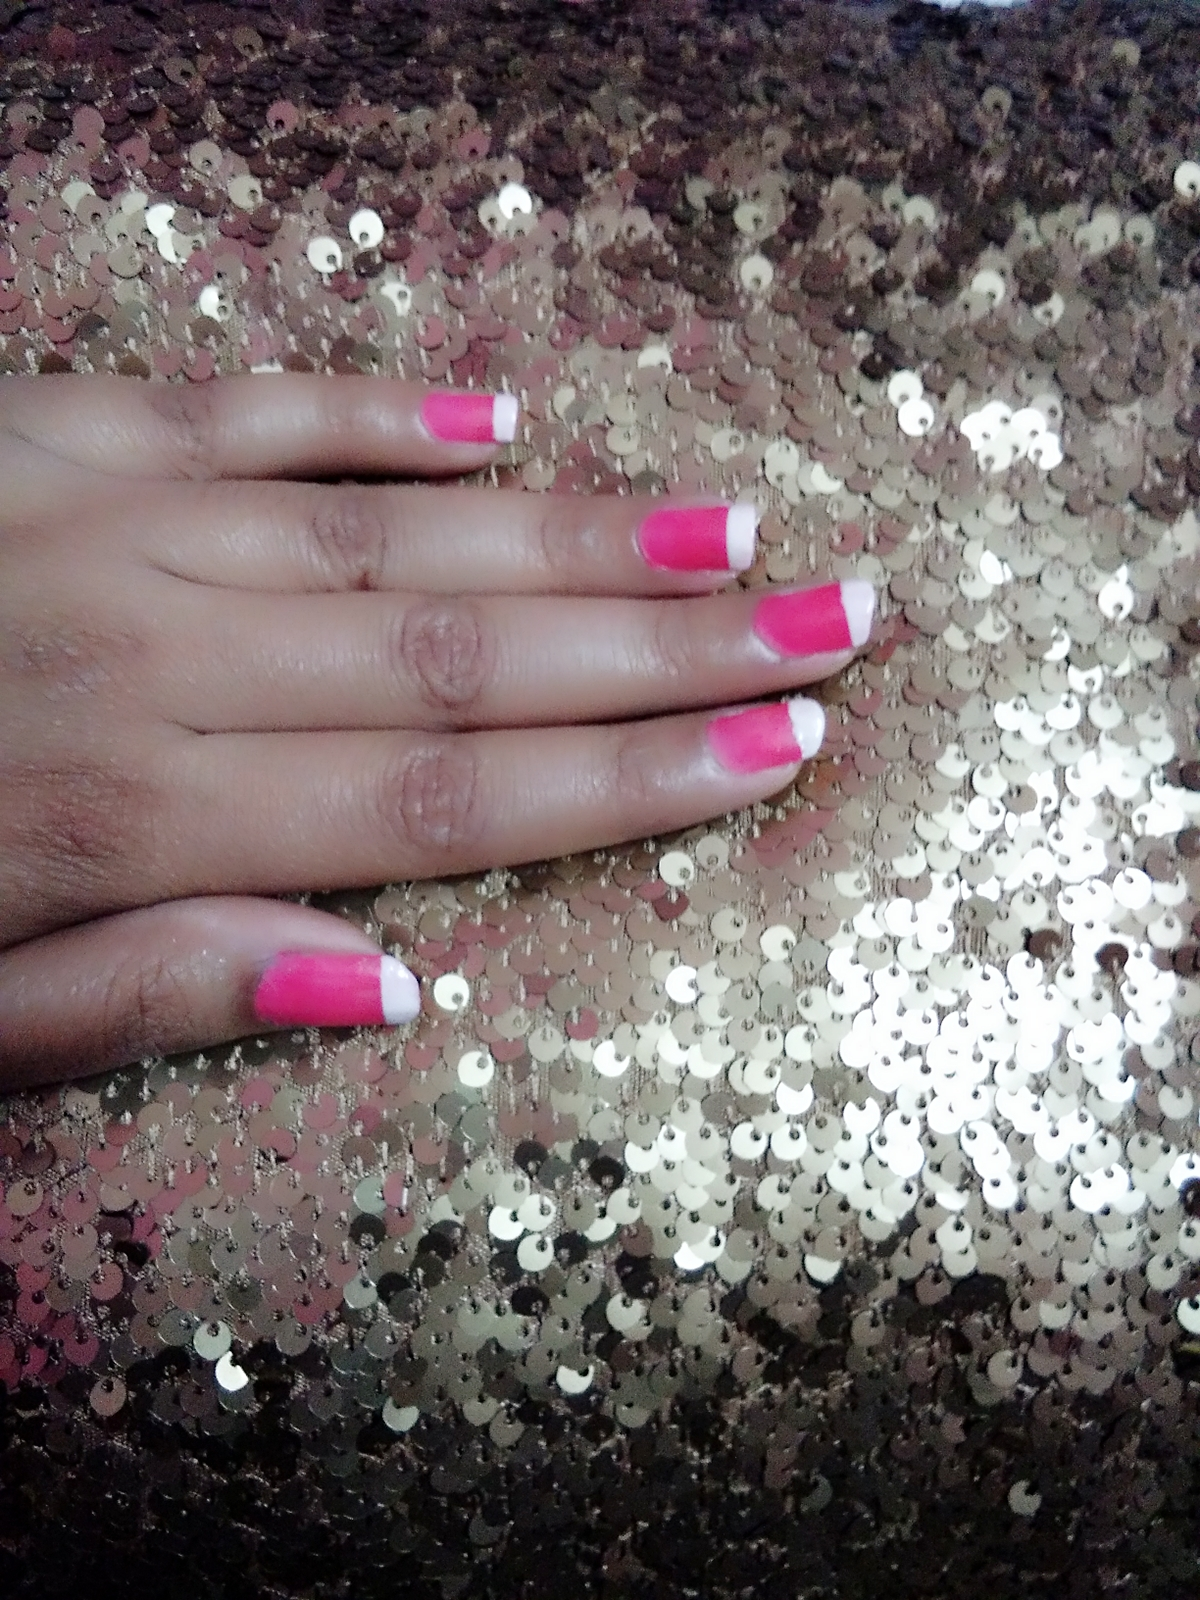 very simple and easy though beautiful nail art. done it with use of scotch tape. #nailart #nailpolish #nailpaint #mattenailpolish #mattenailpaint #pinknailpolish #Whitenailpolish #pinknails #pinkandwhite #roposo #SoRoposo #roposoloves #roposotalks #Roposotalenthunt